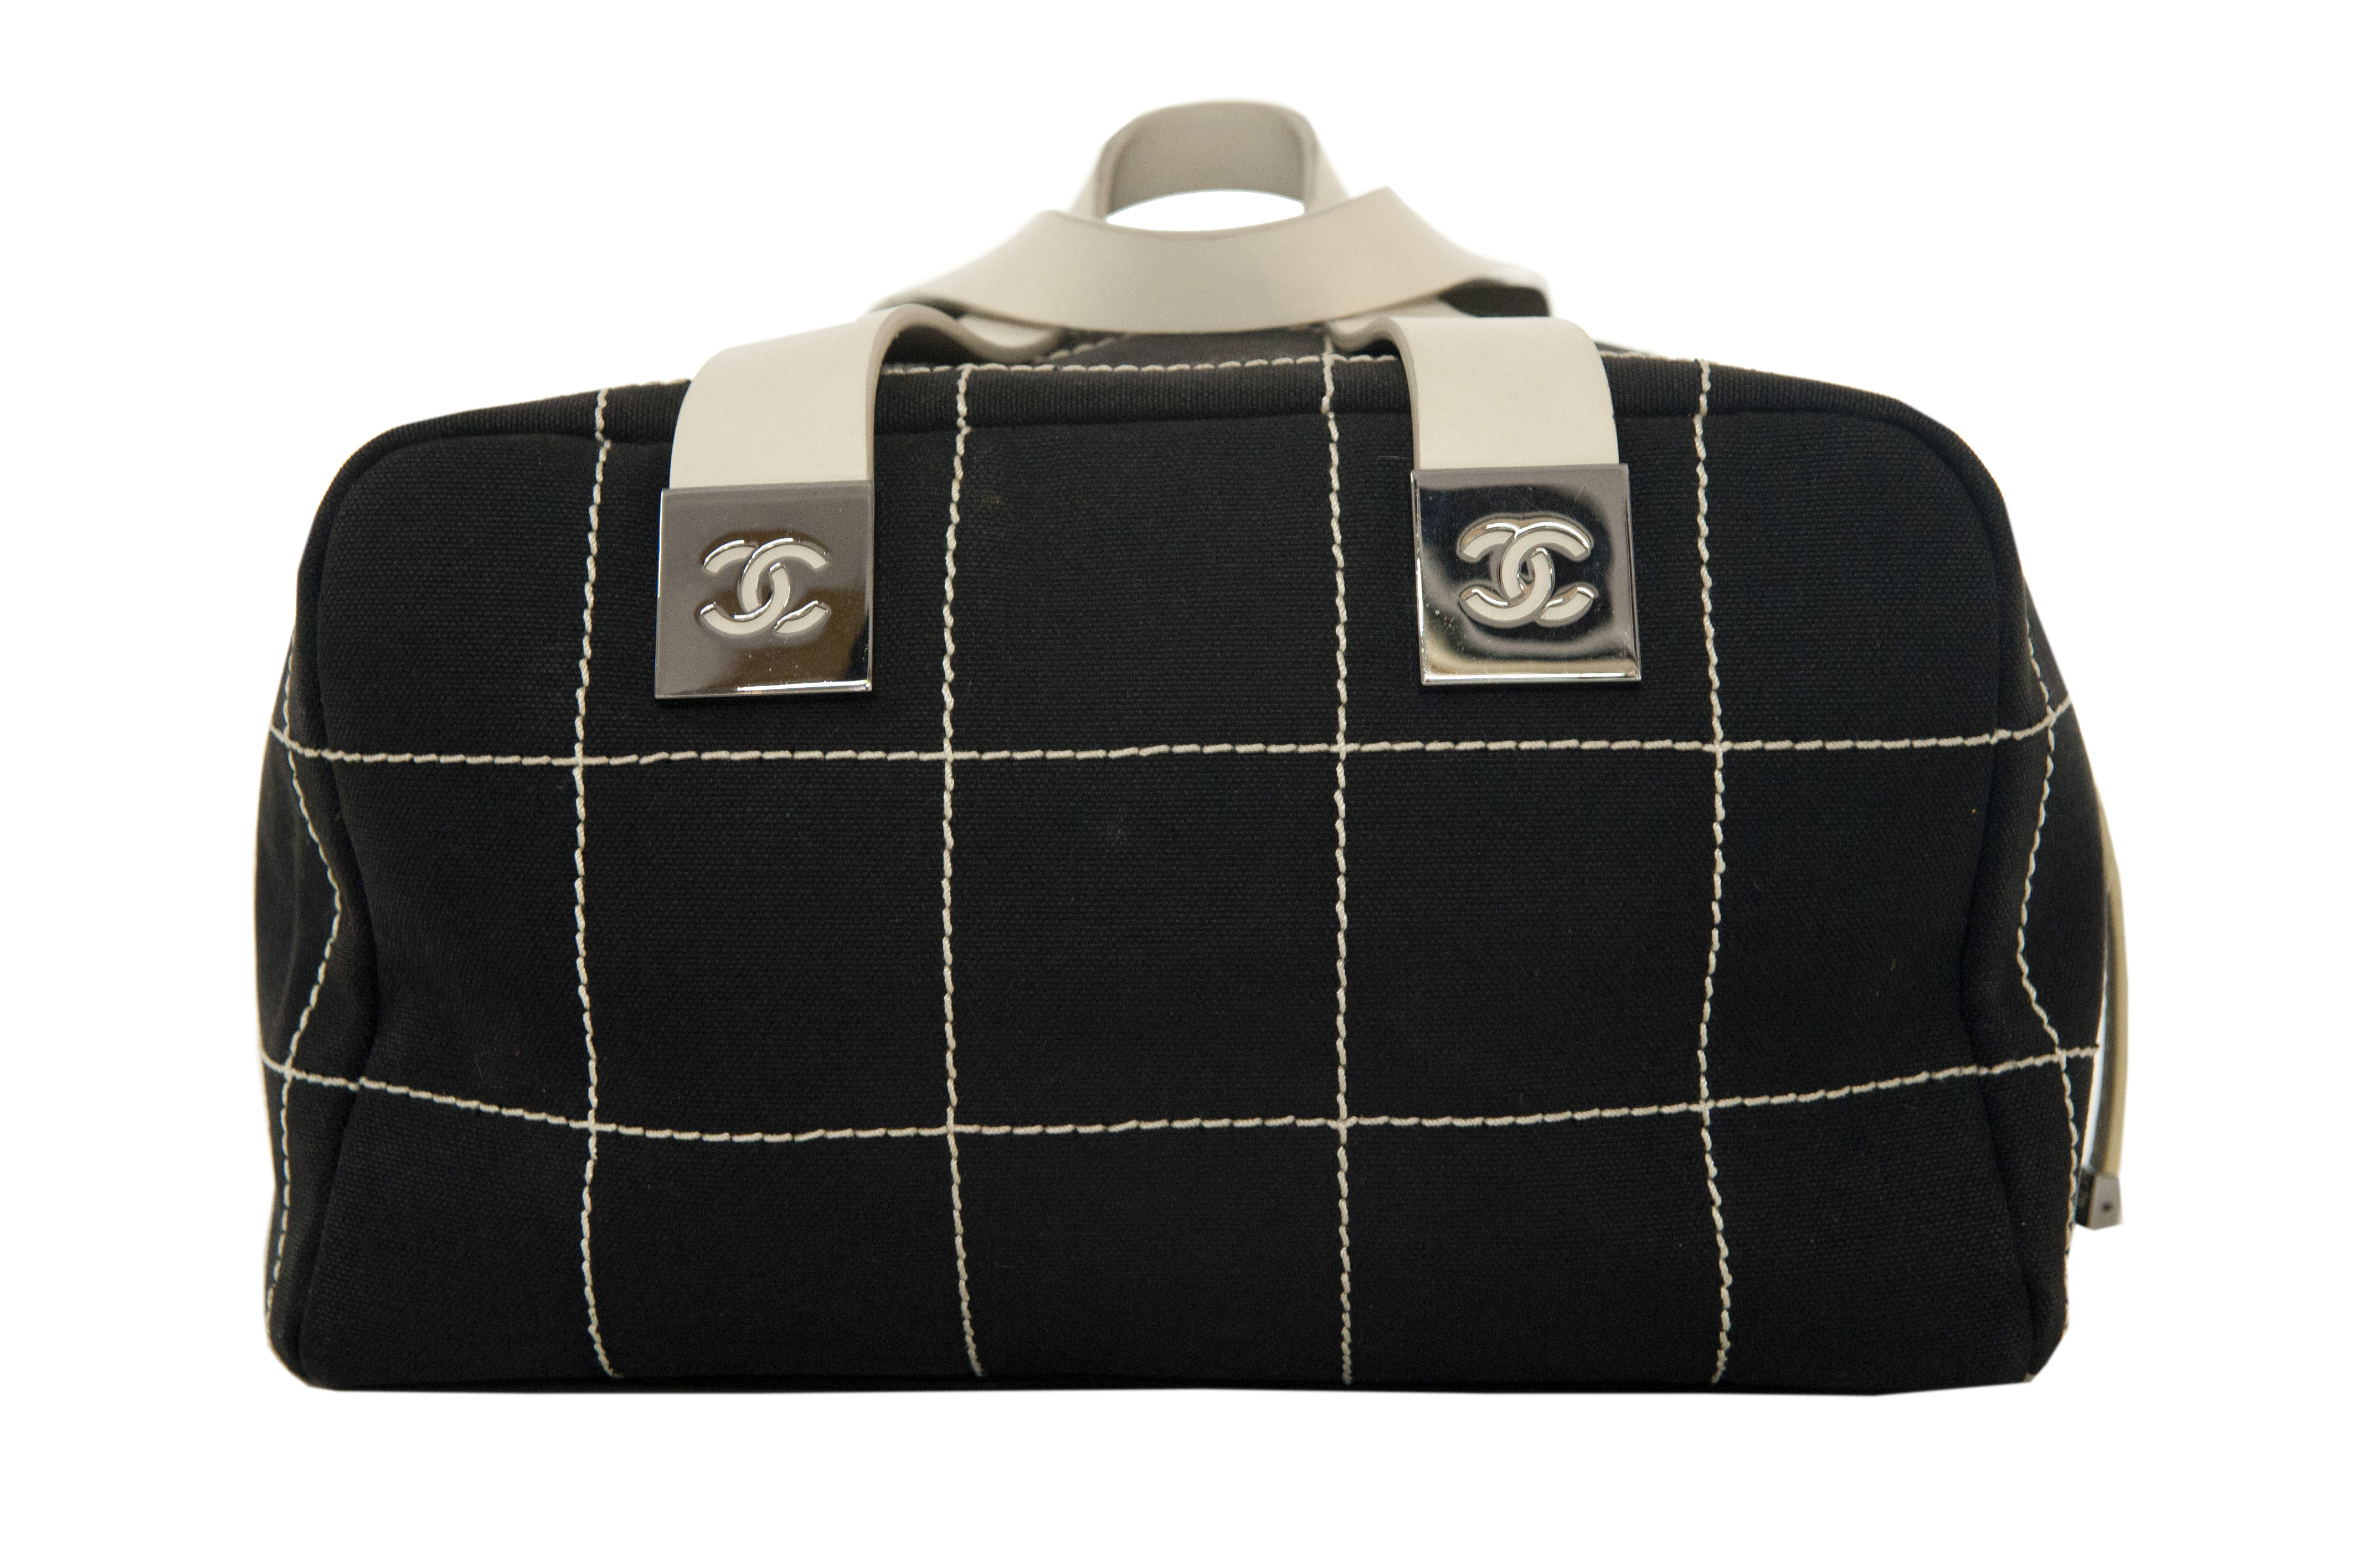 950ac329032d Chanel bag ''5'' black and white fabric - Vintage Shop in Mykonos